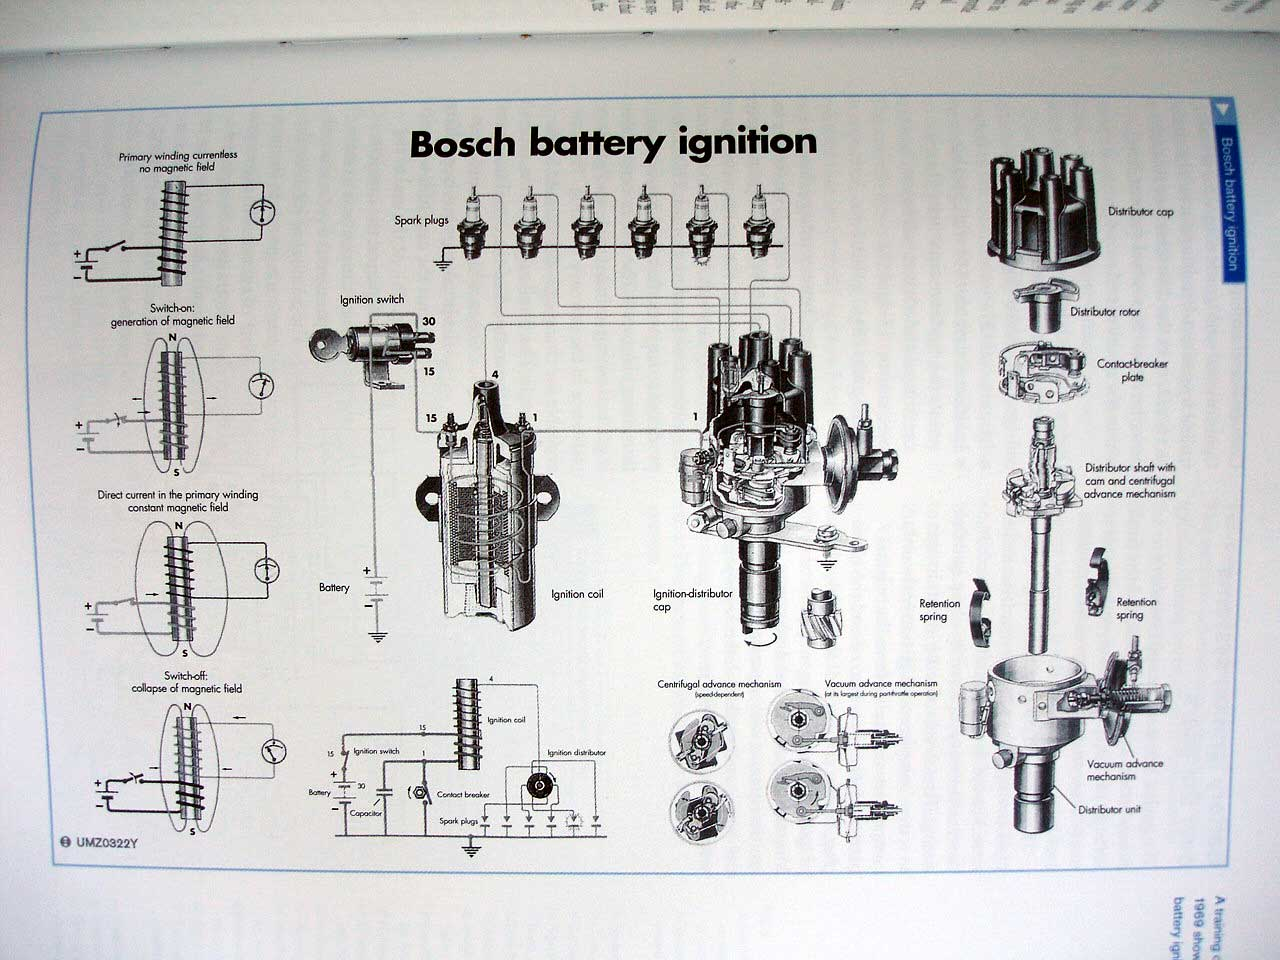 1978 F150 Wiring Diagram Will Be A Thing Ford F 150 Generator Understanding The Ignition System Radio